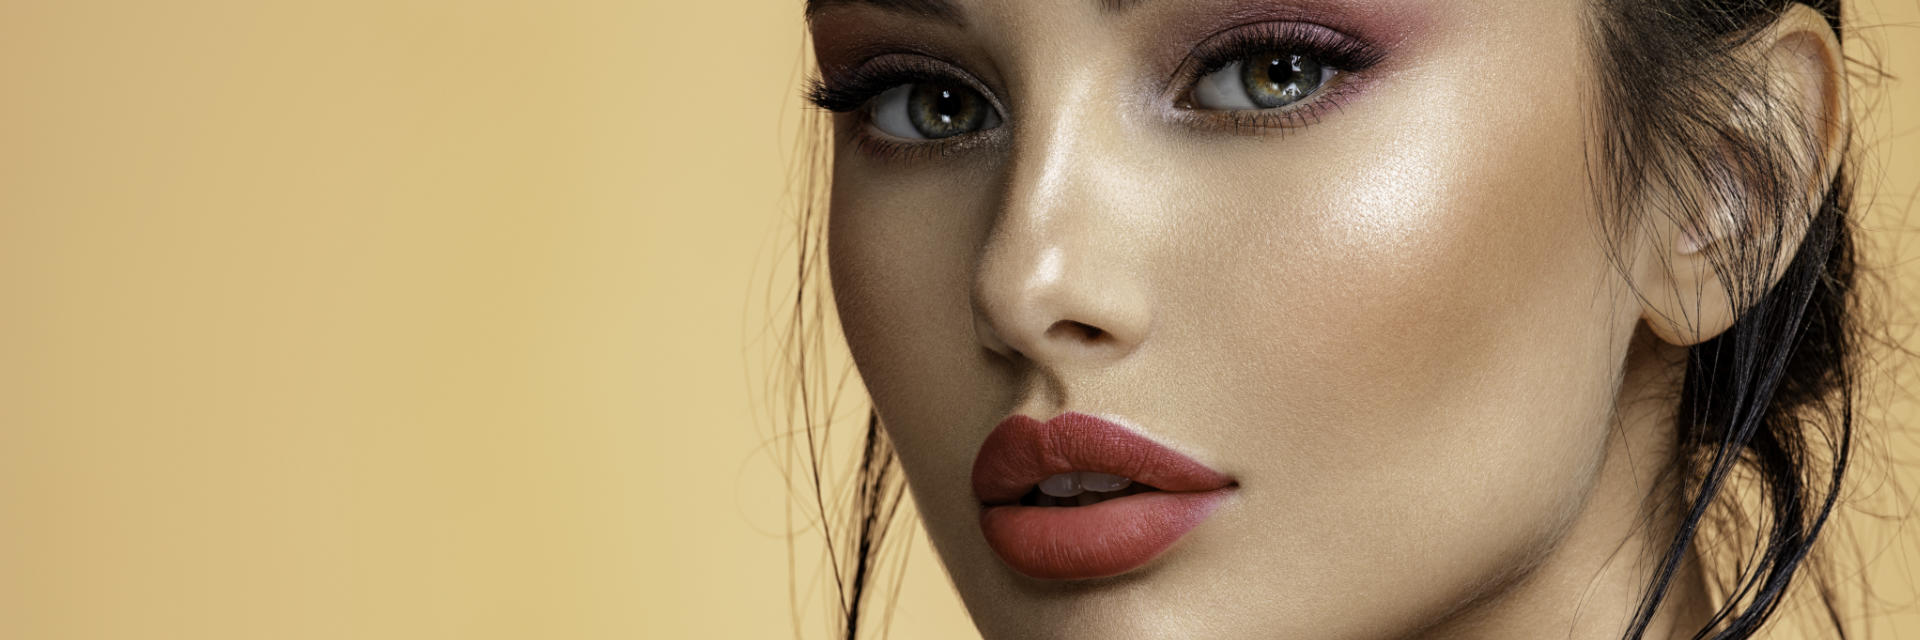 face of a young woman after facial filler treatment